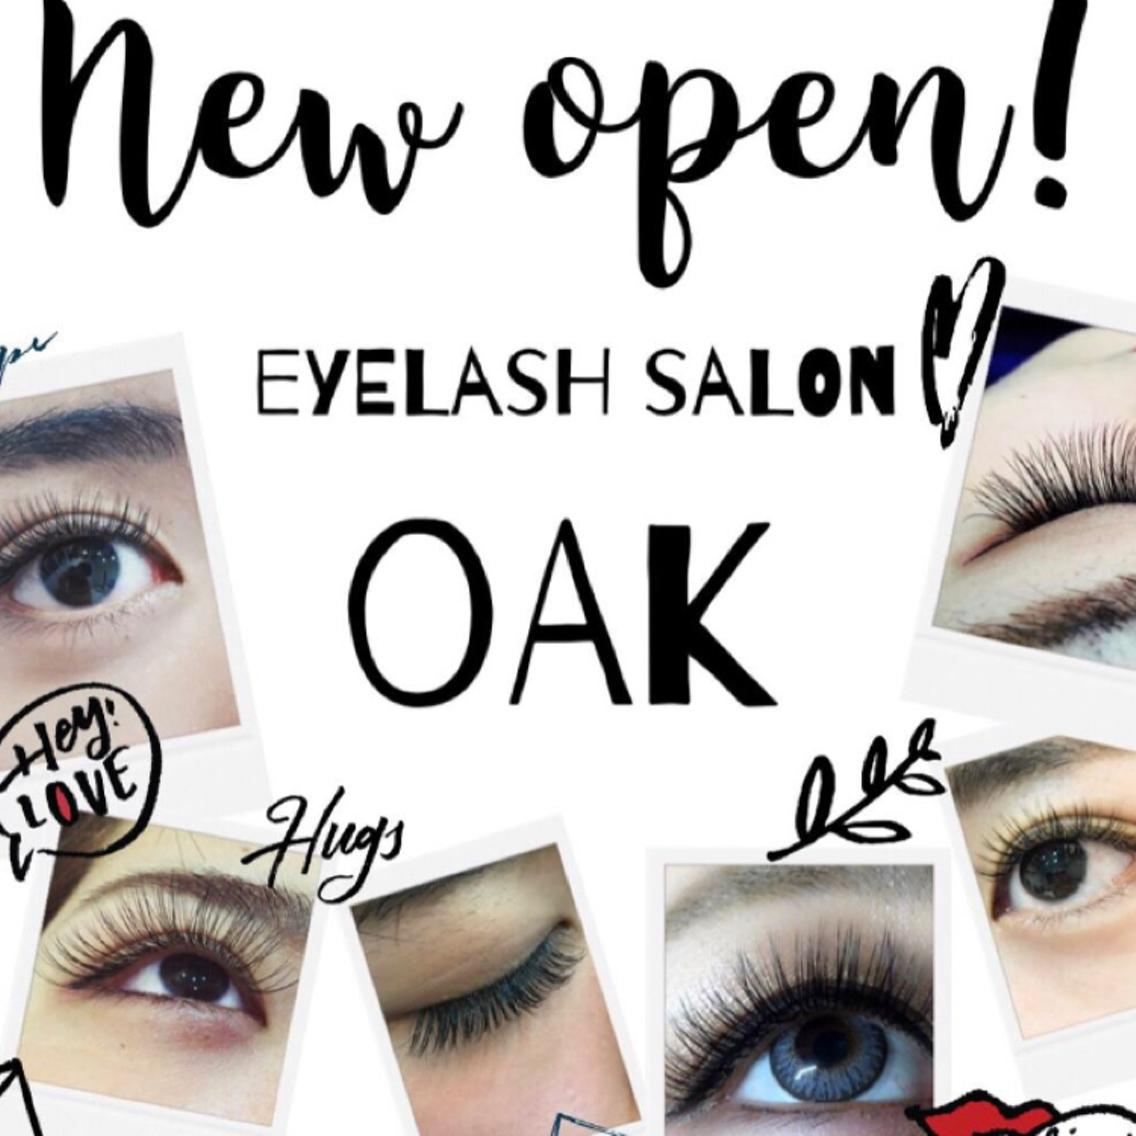 Eyelash salon oak所属・salonoakの掲載